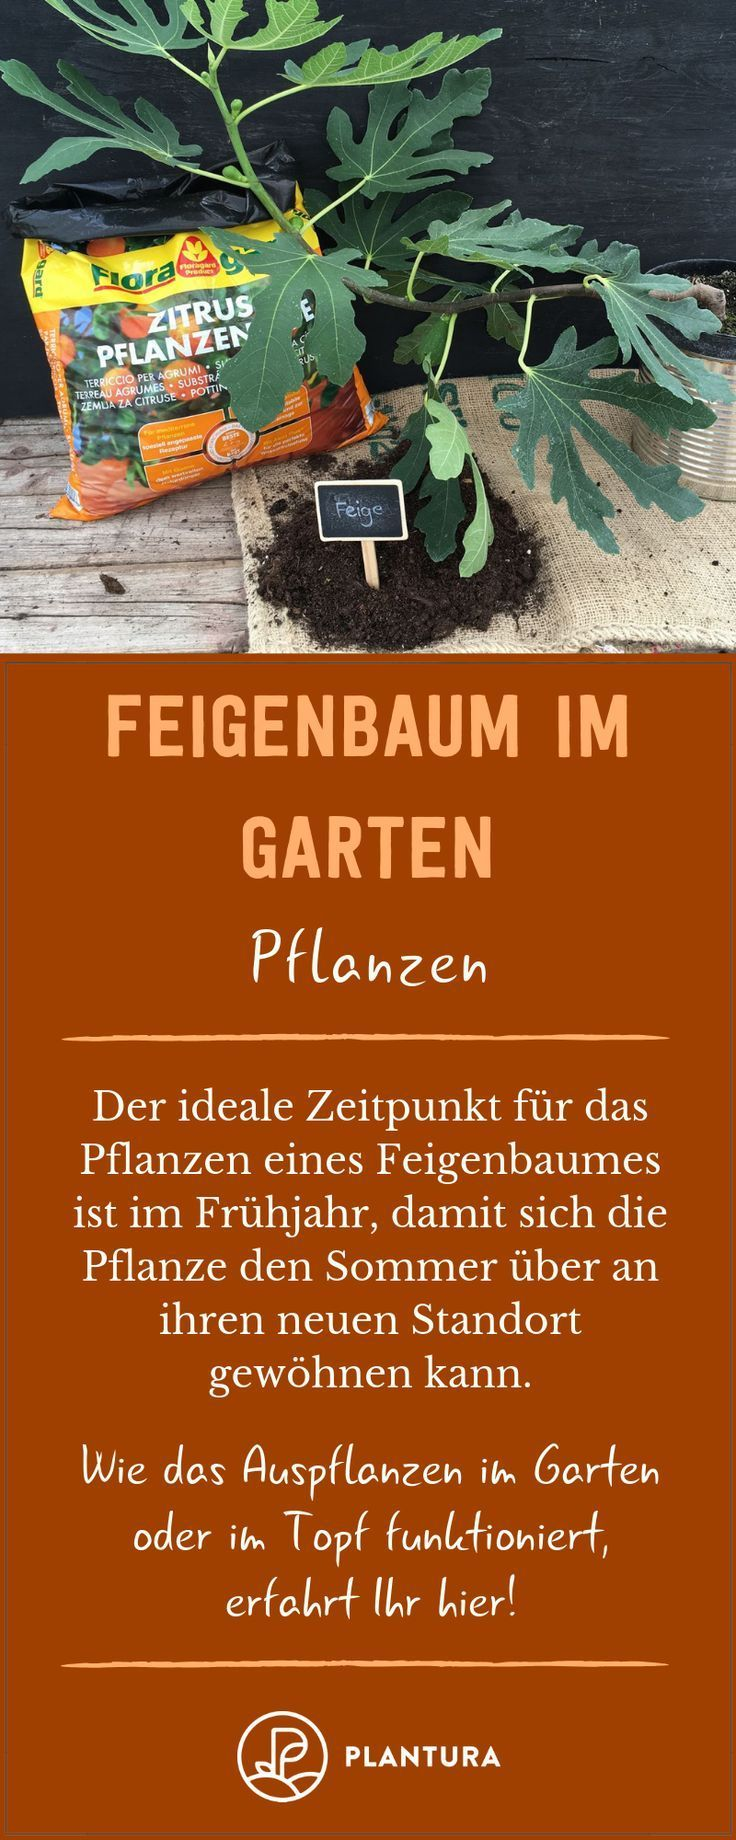 Display I Fig Tree In The Garden Plants How To Plant A Fig Tree Yourself Do Garden Fig Tree Garden Plants Fig Tree Plant